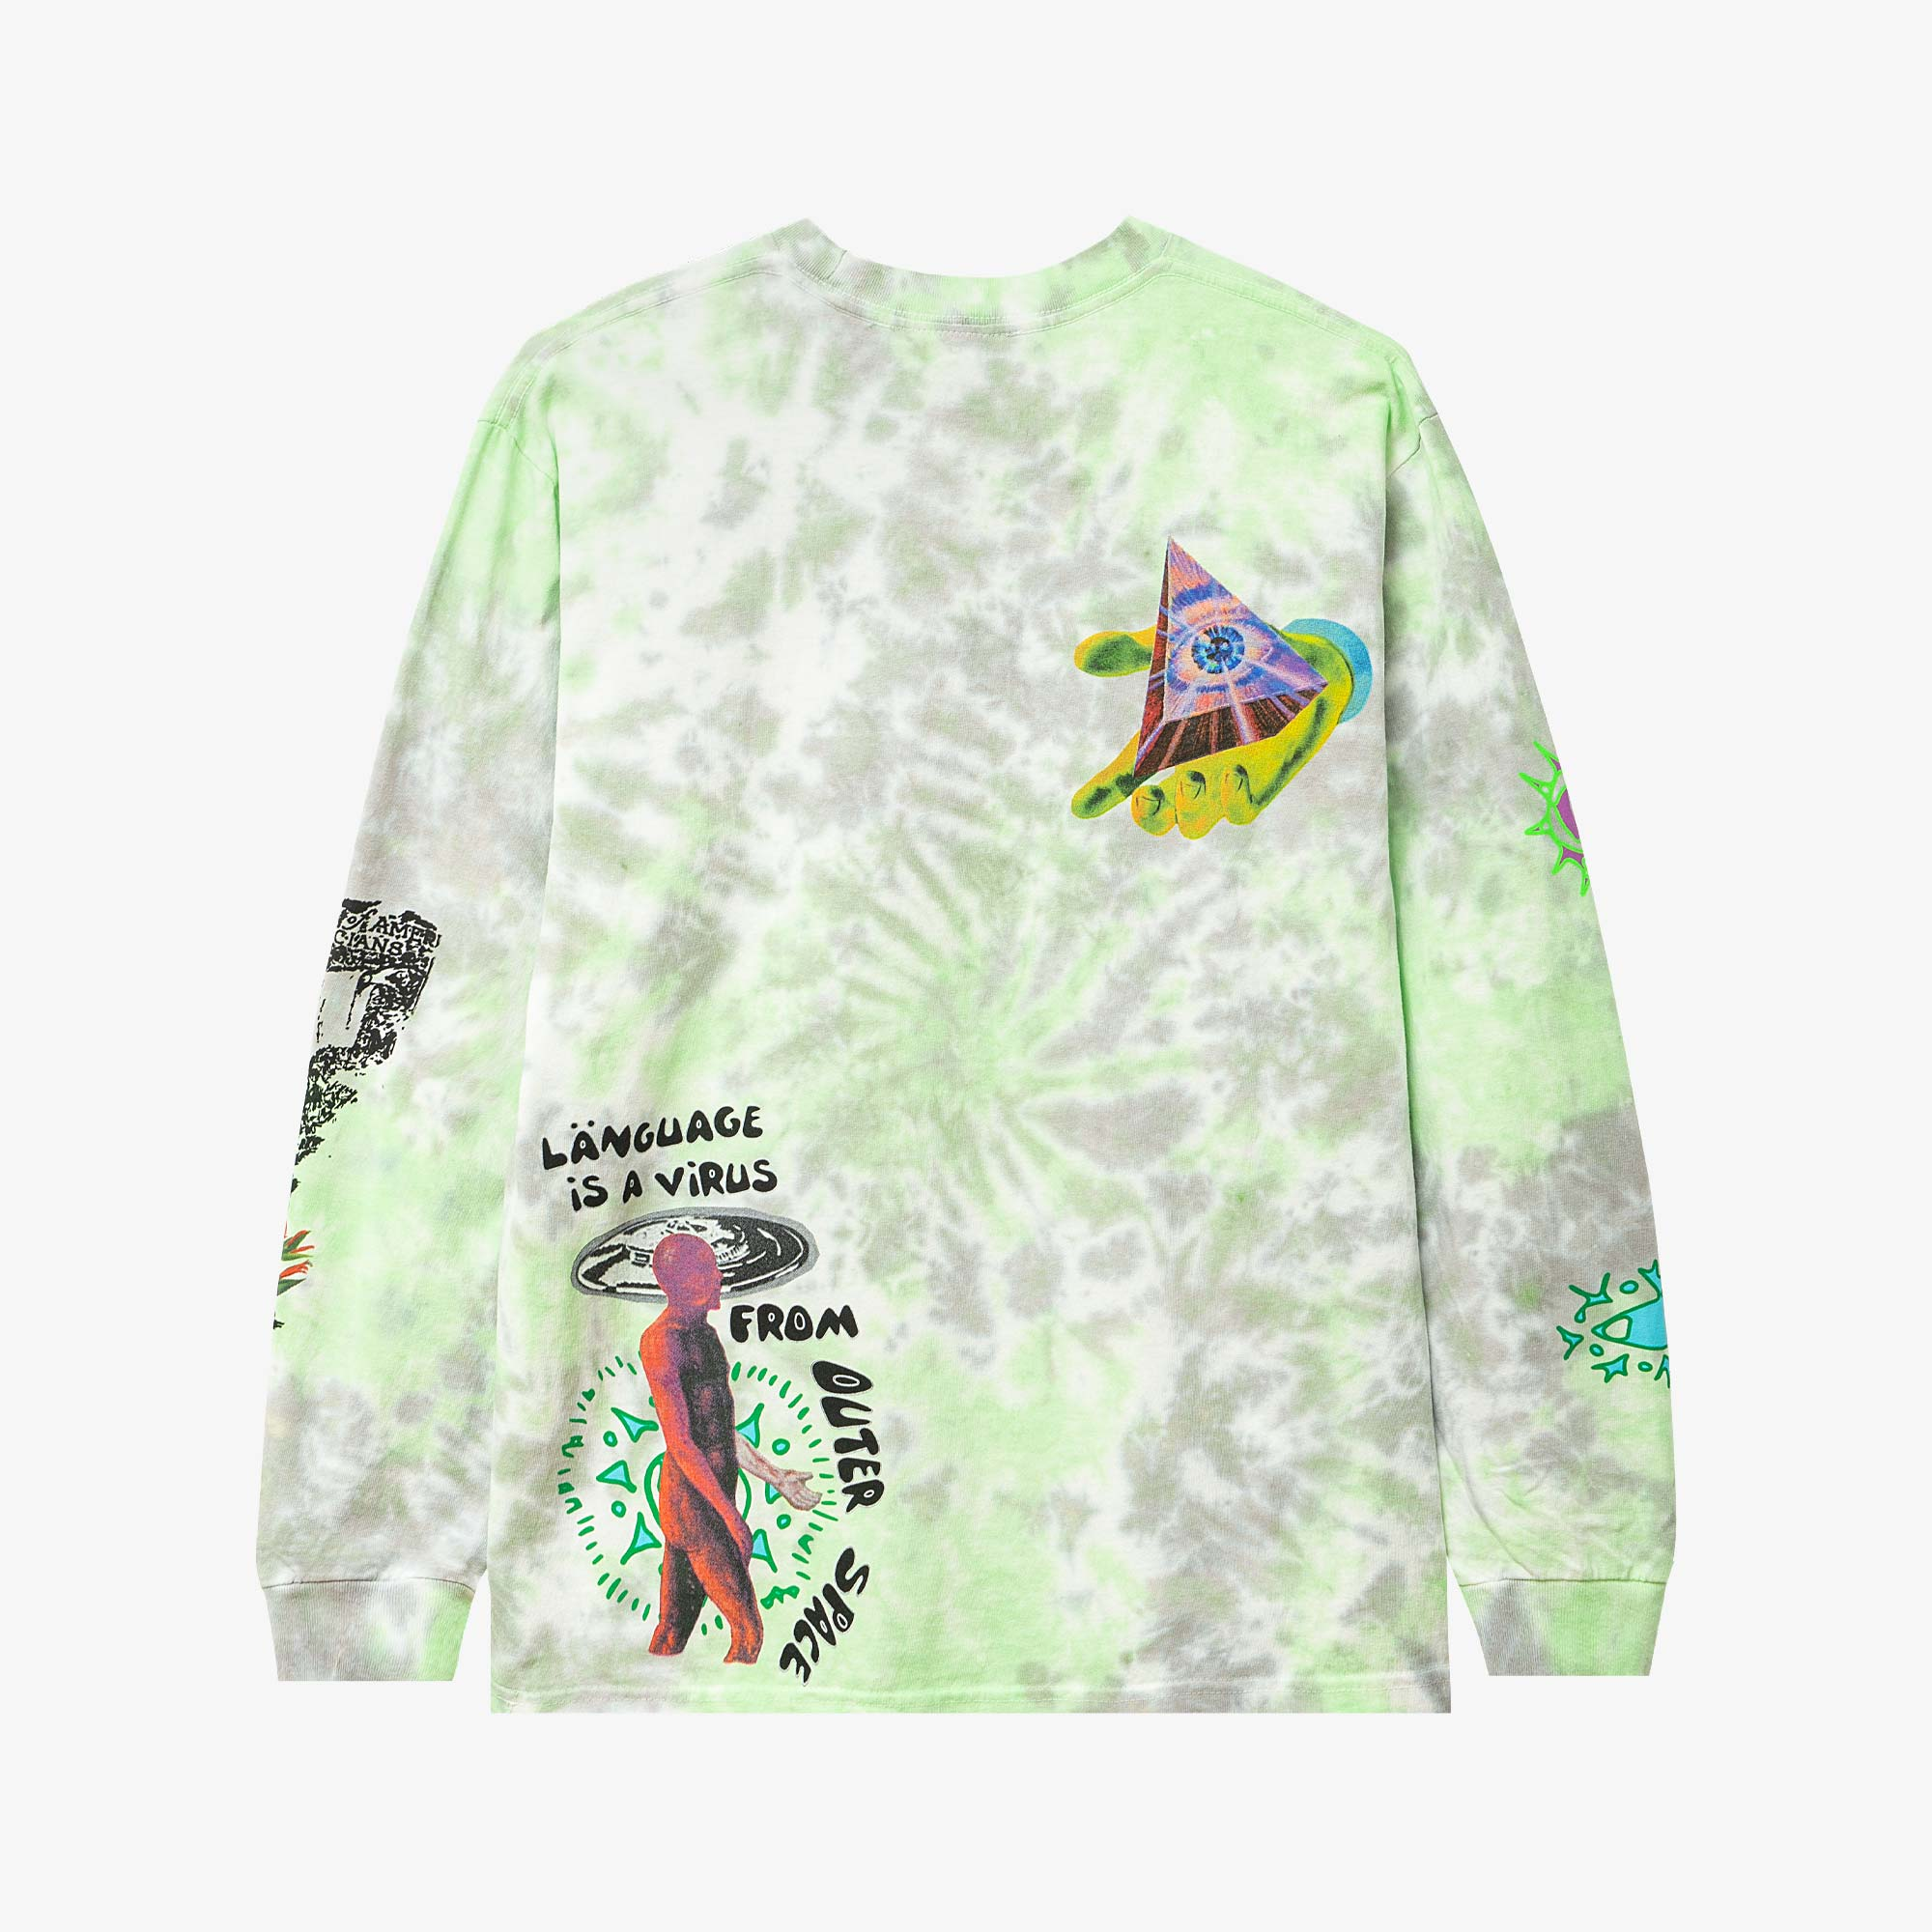 Real Bad Man From Outer Space LS Tee - Blue / Green 2